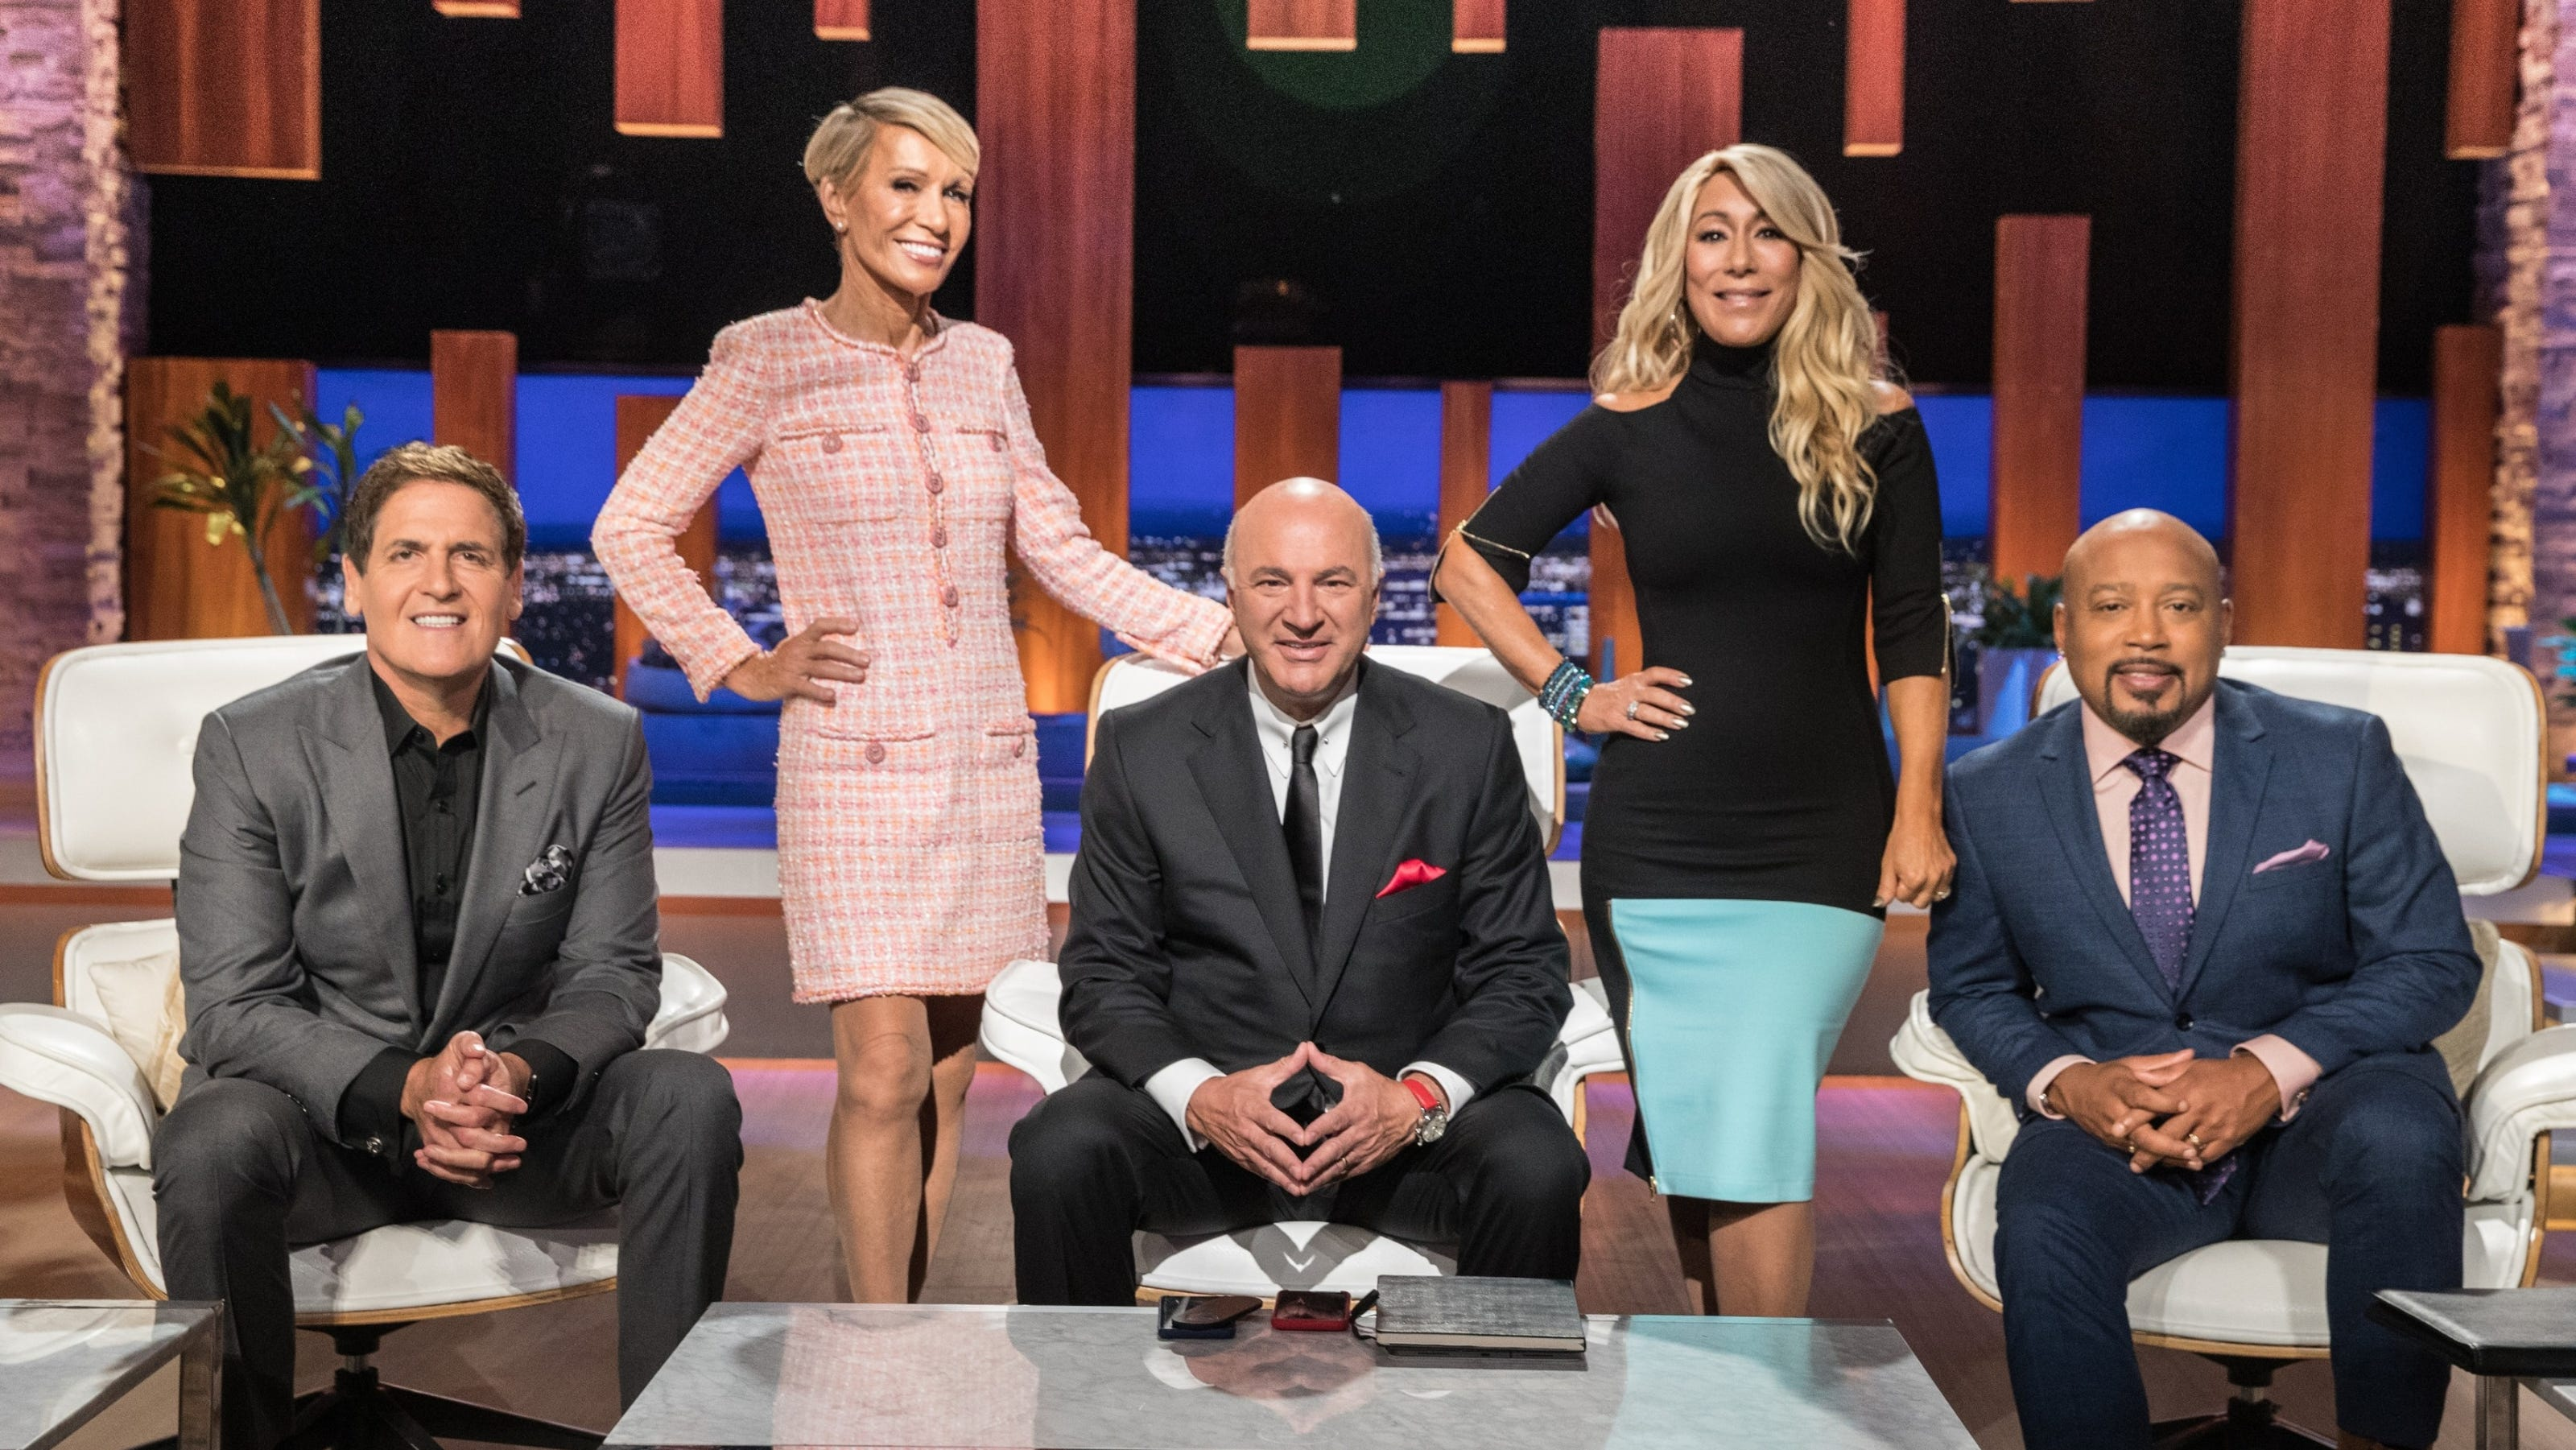 Shark Tank Secrets Behind The Scenes Look At How The Show Gets Made